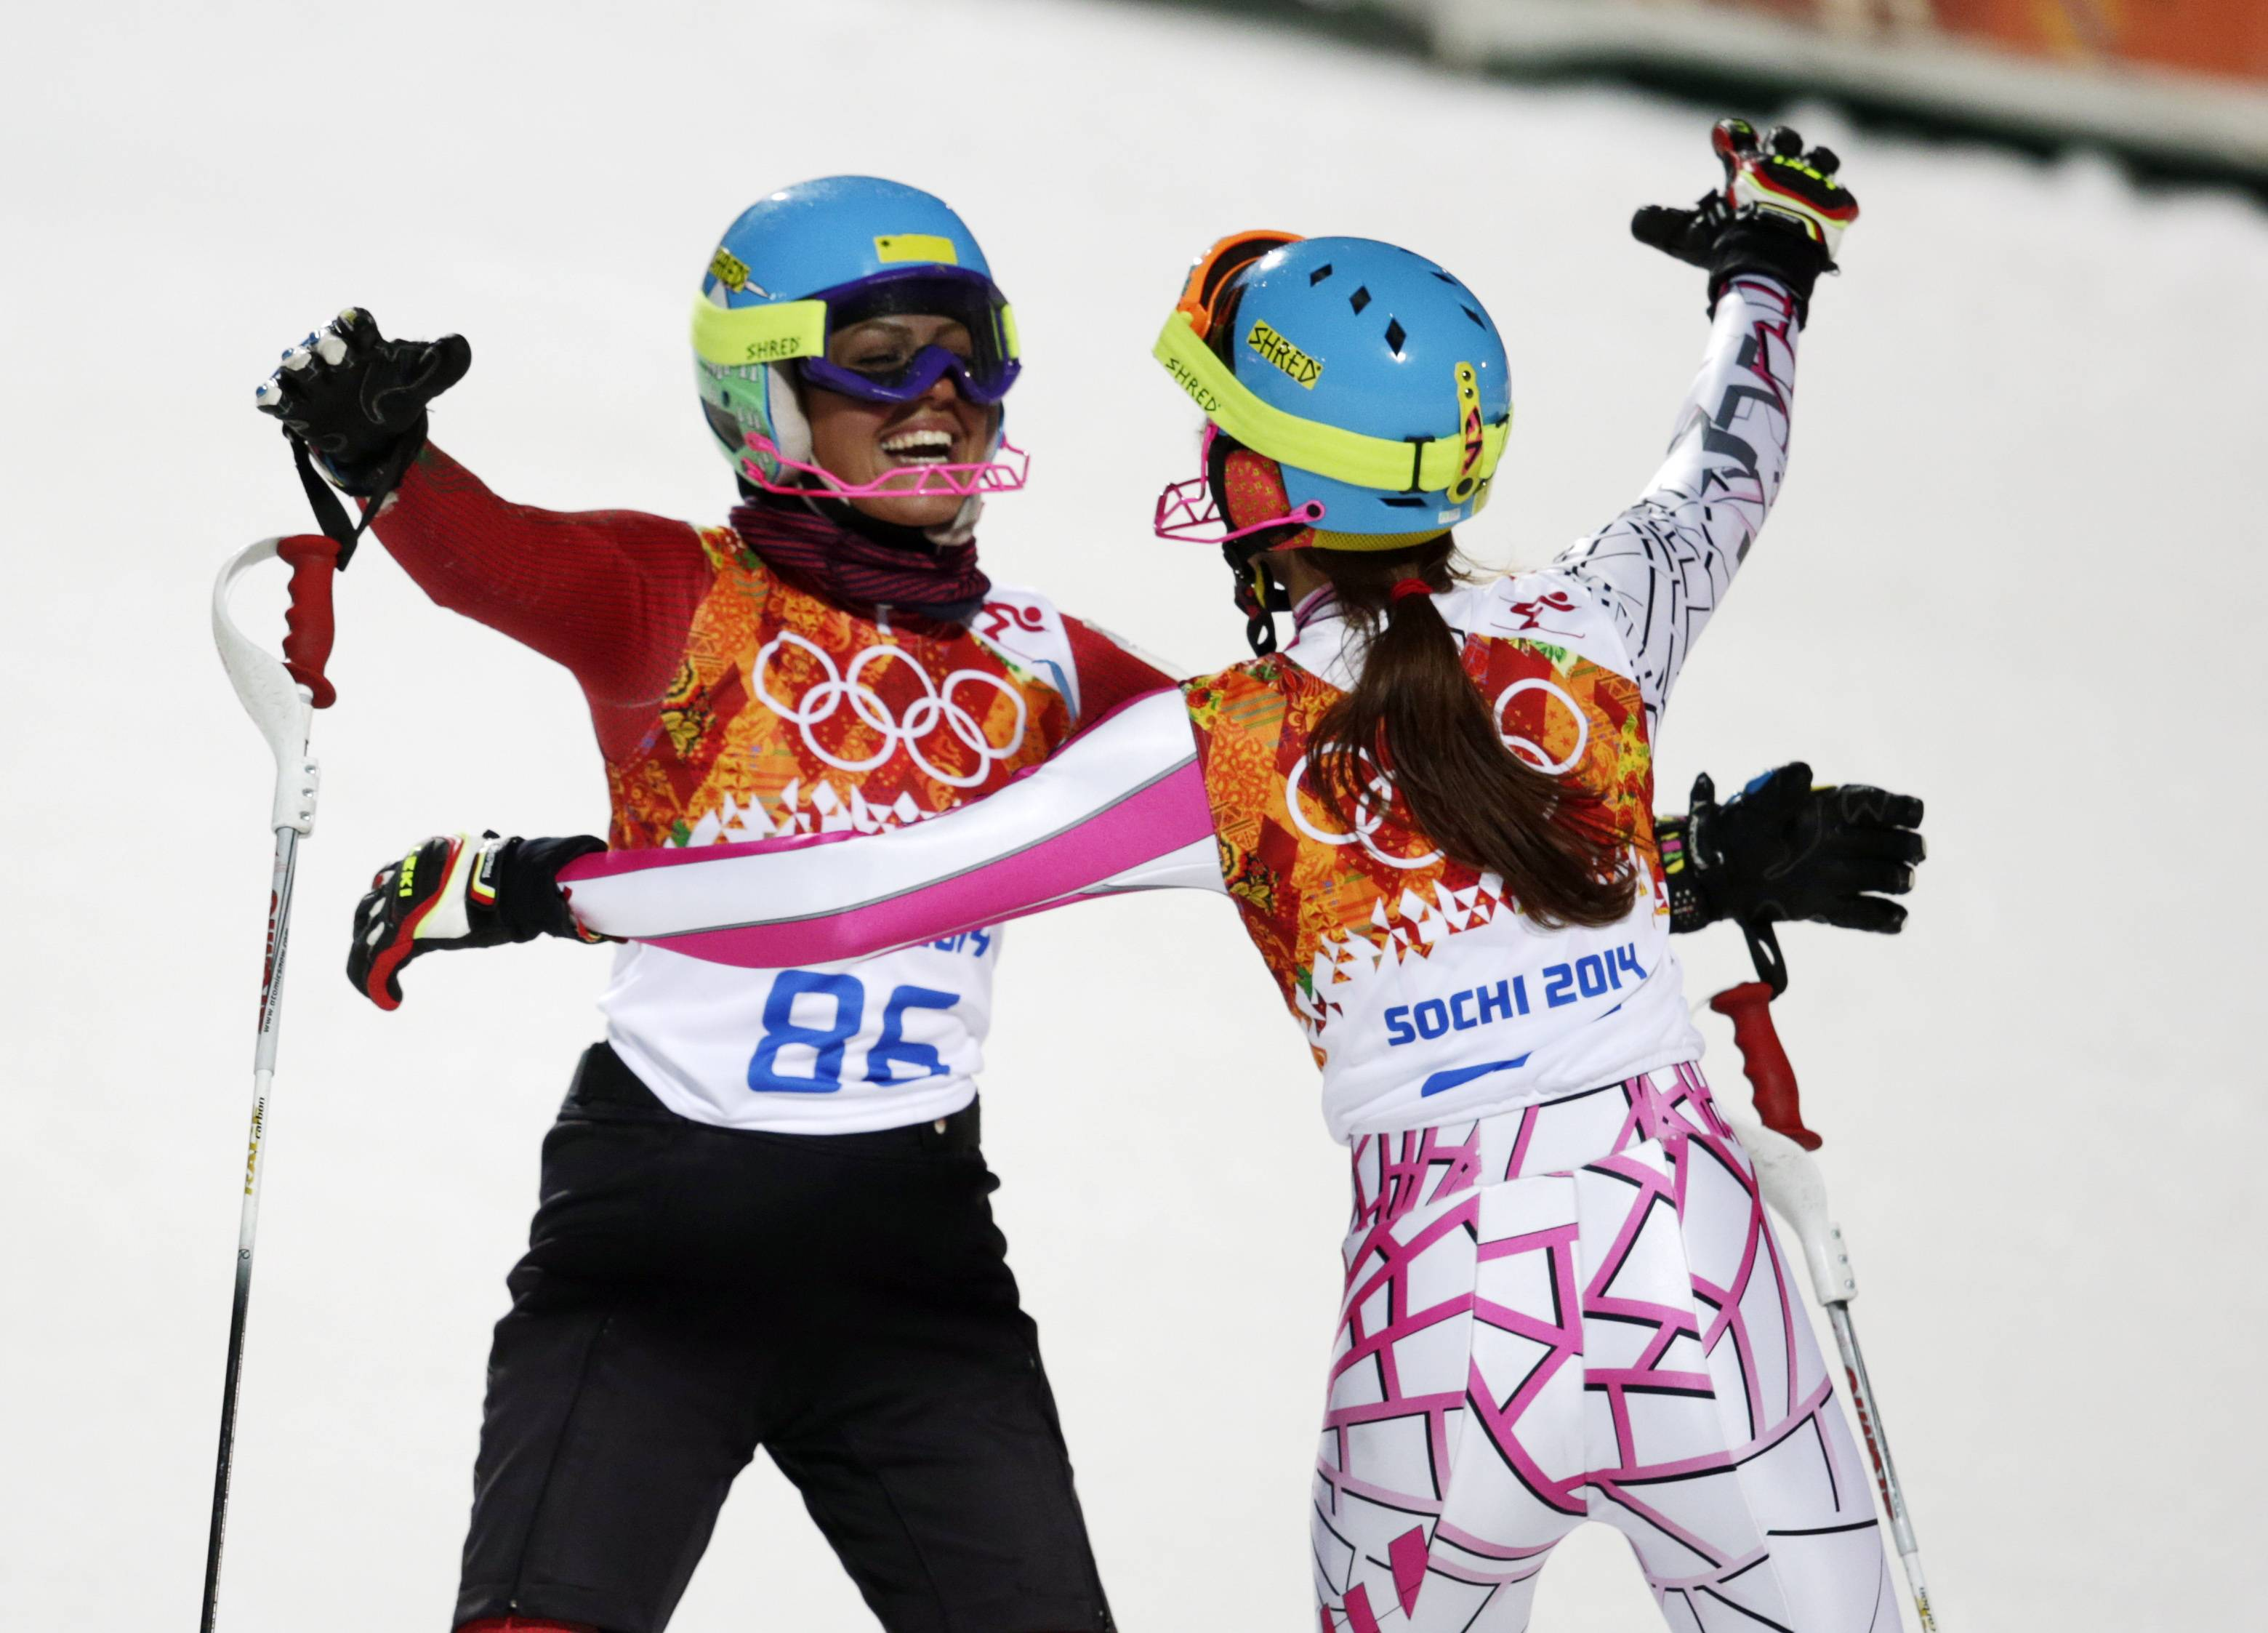 Iran's Forough Abbasi, left, and Lebanon's Jacky Chamoun embrace after finishing the second run of the women's slalom .